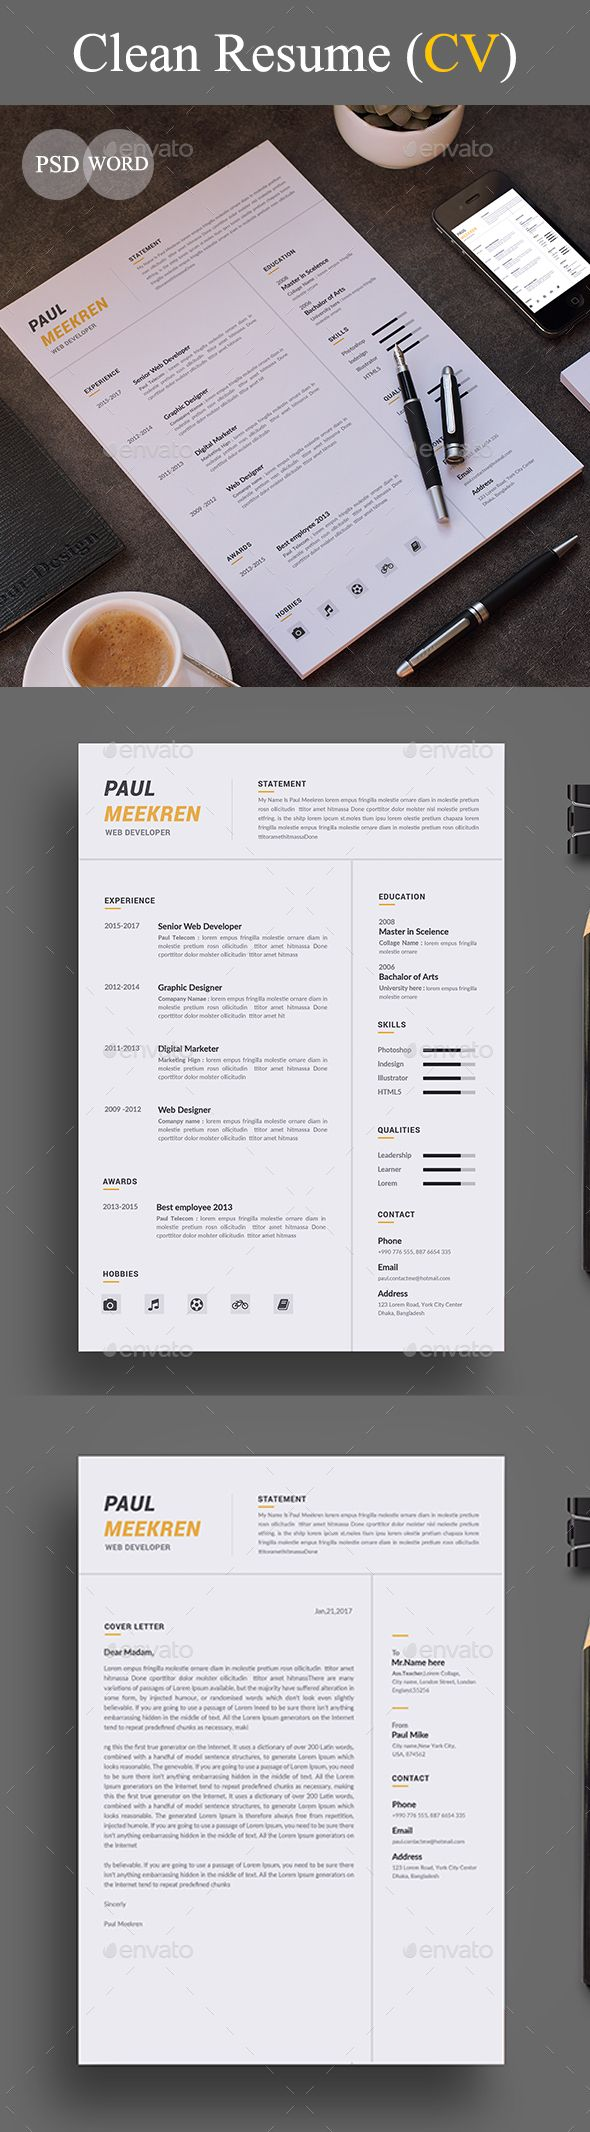 Resume Templates Resume Cover Letter Template PSD MS